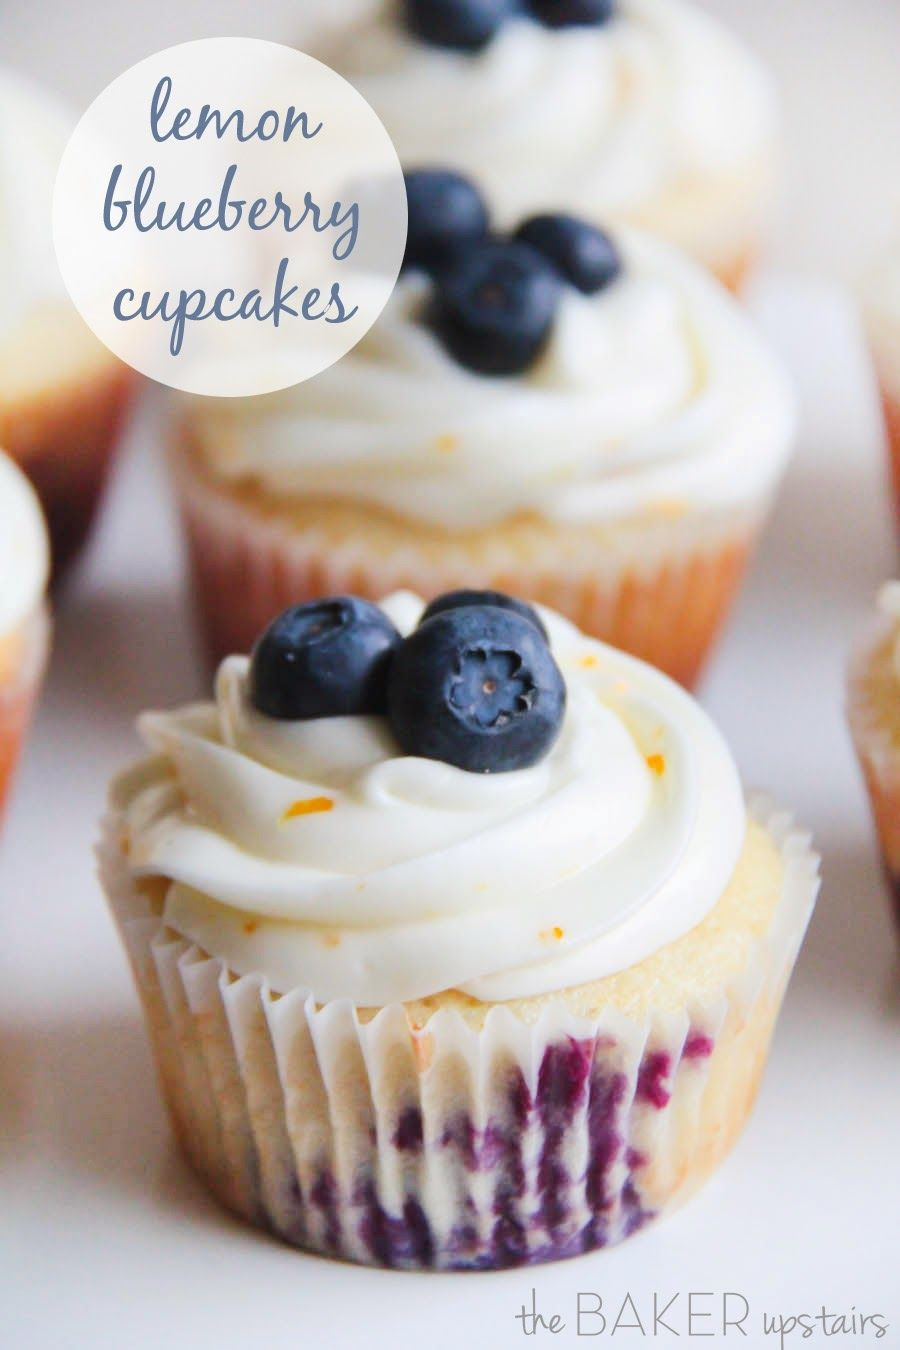 Lemon blueberry cupcakes from The Baker Upstairs. These cupcakes are gorgeous and delicious too! www.thebakerupstairs.com